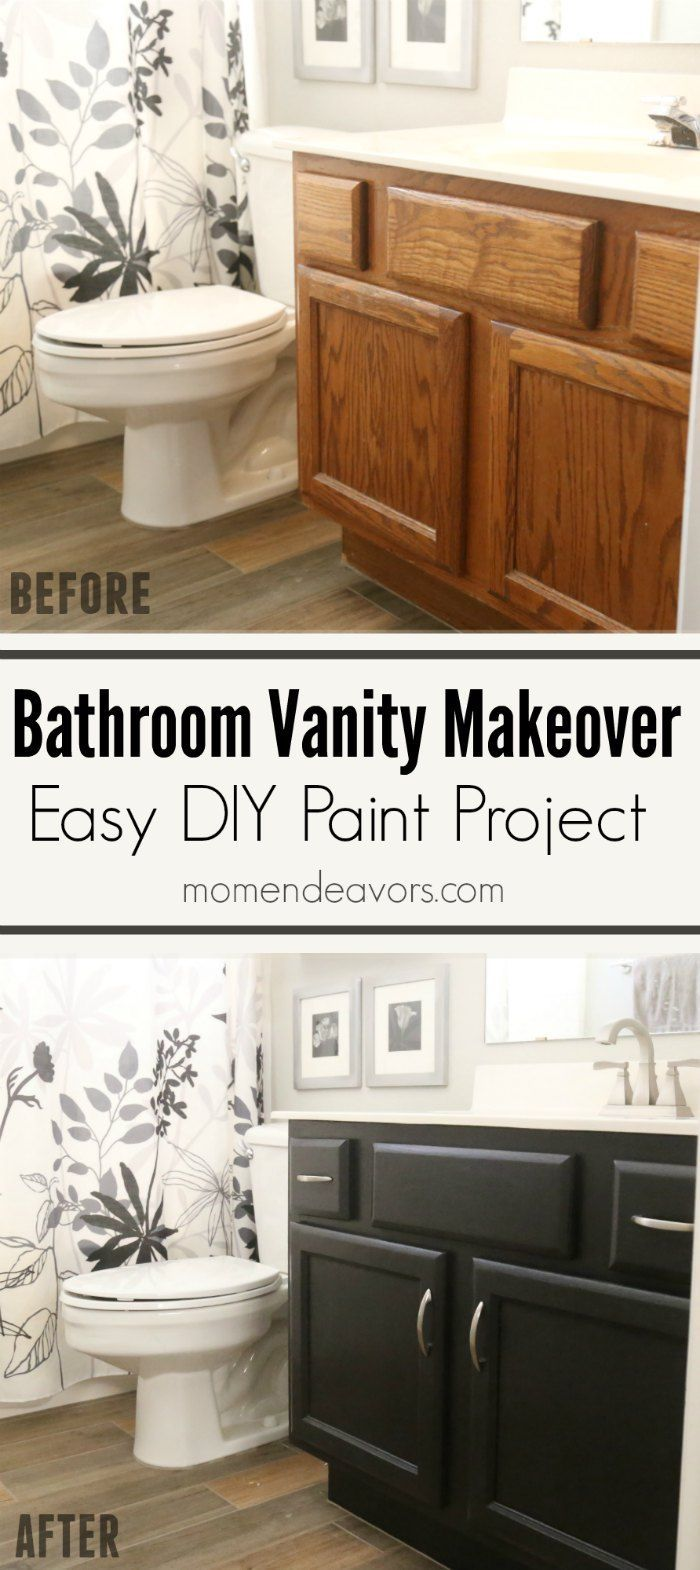 Painted Bathroom Cabinets Before And After best 20+ bathroom vanity makeover ideas on pinterest | paint